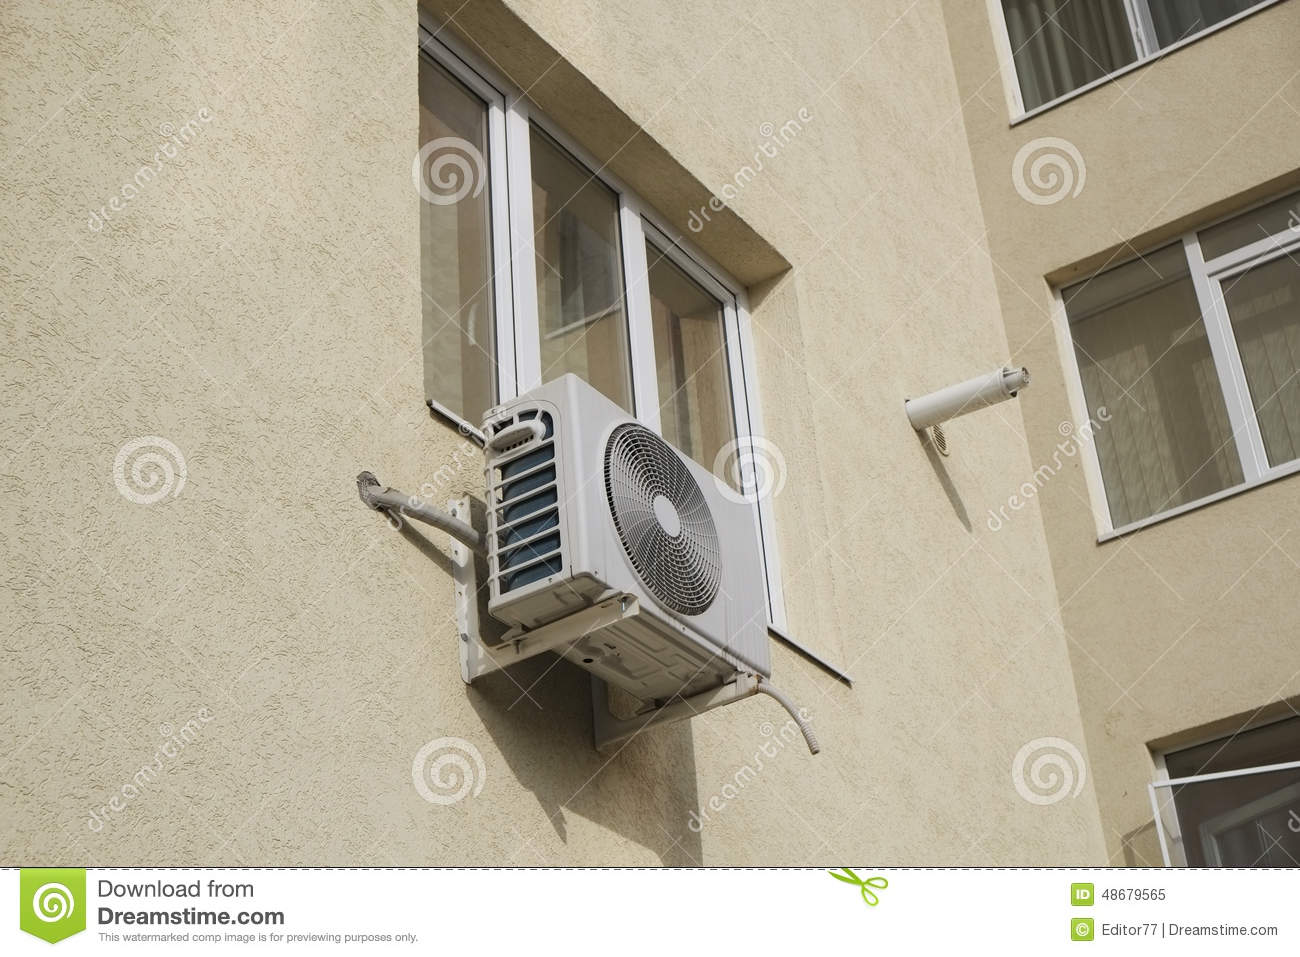 Isolate Air Conditioning Device Stock Image - Image of conditioning ...